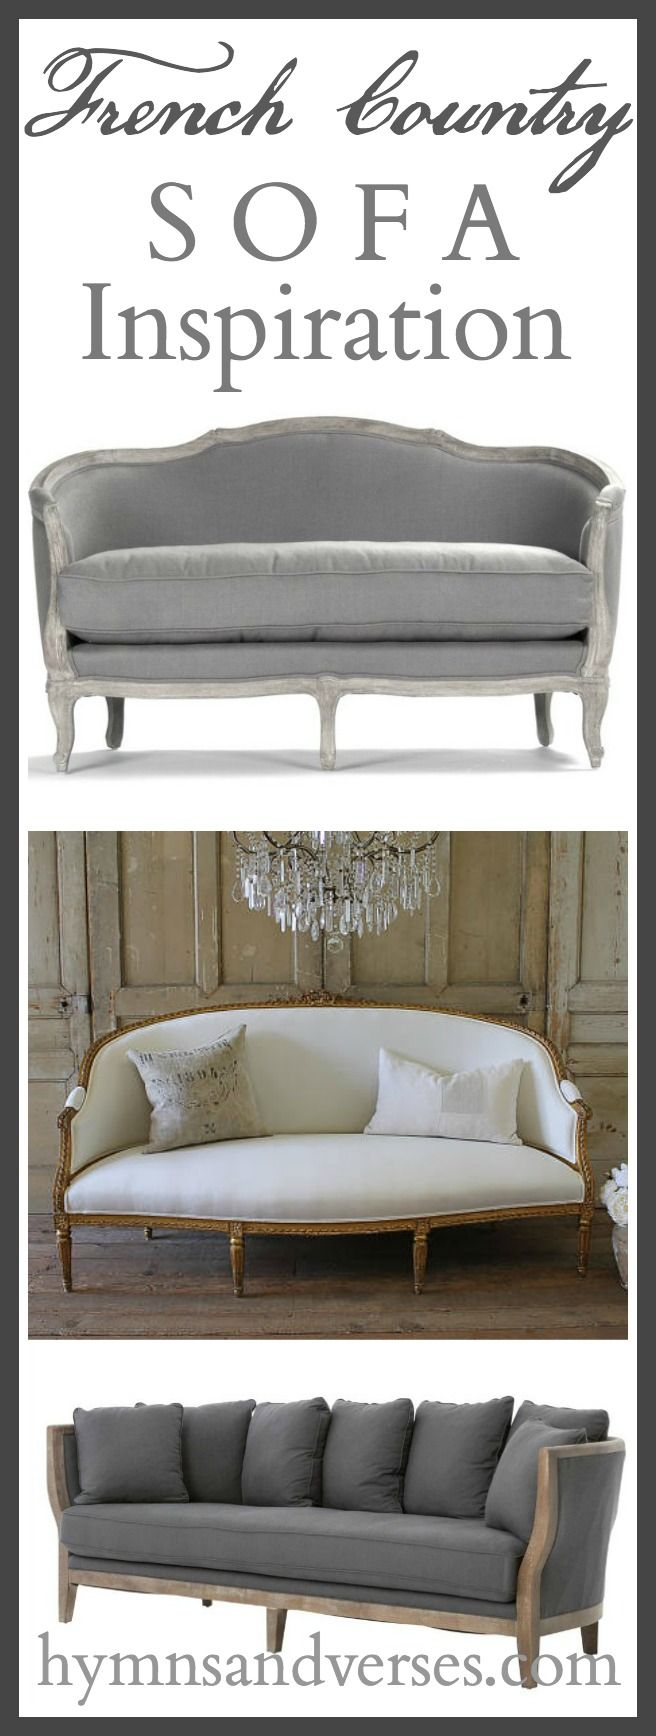 Best 25 country sofas ideas on pinterest french country sofa diy sofa table and entry table diy - French country sectional sofas ...